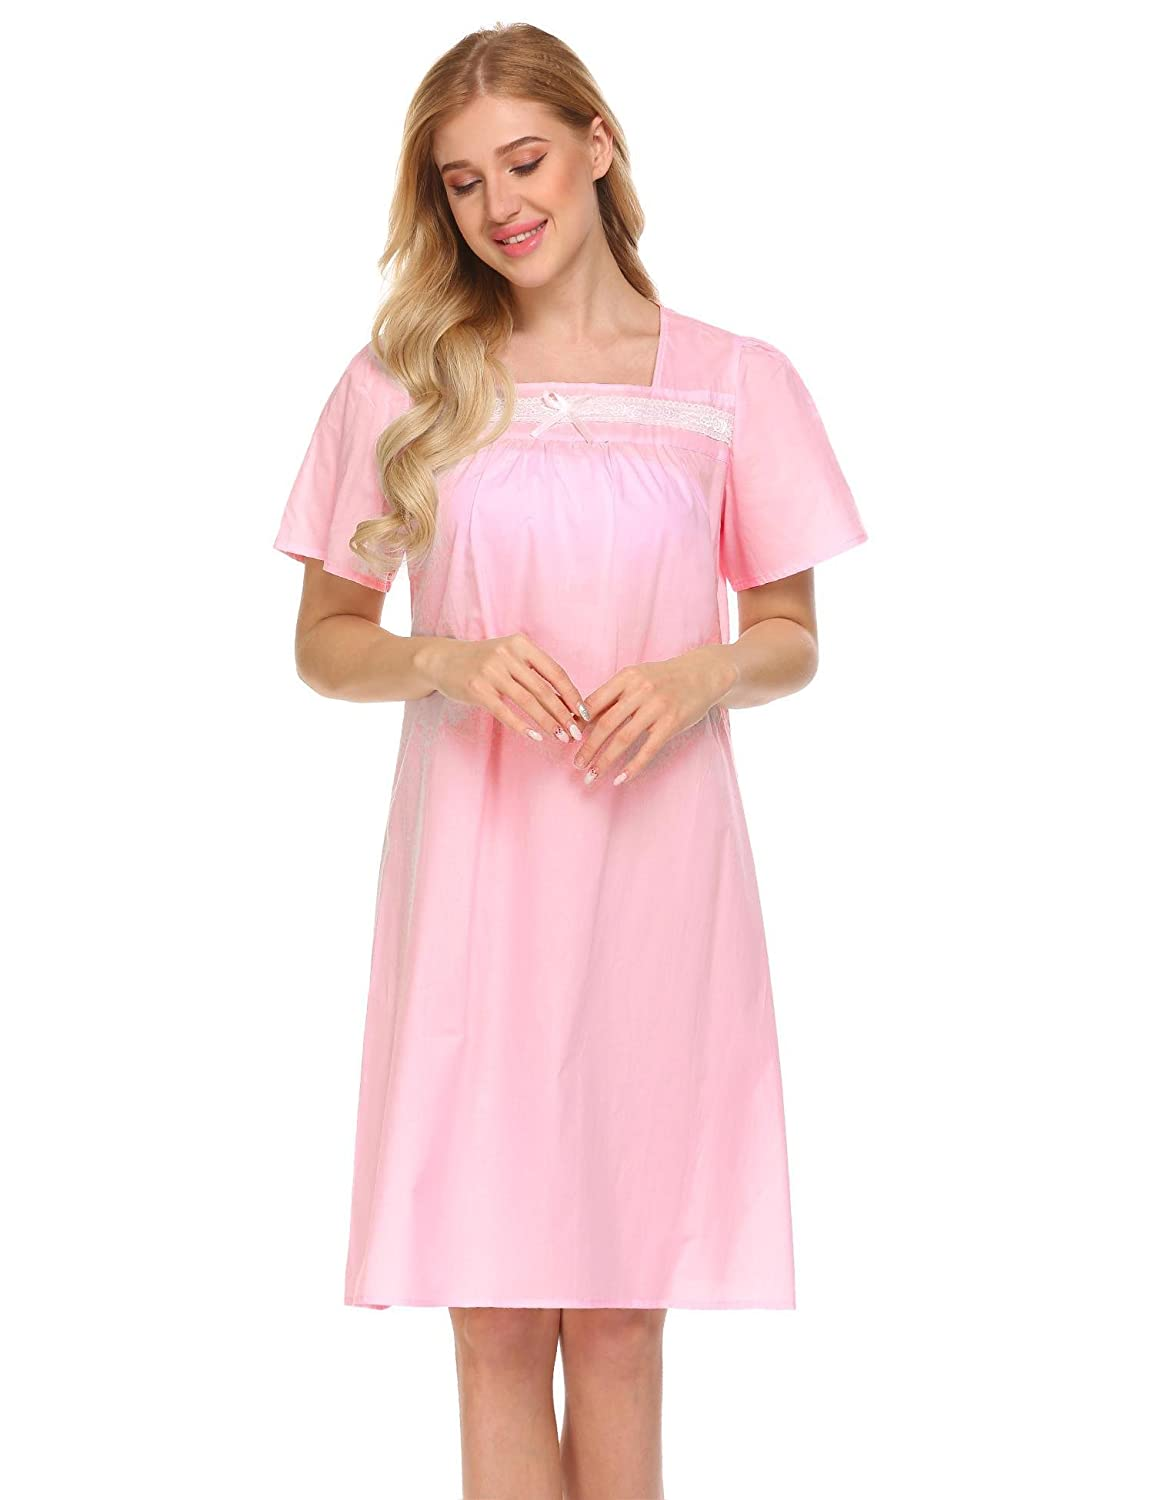 16ae32ee88 Miuniu Victorian Nightdress Womens Cotton Short Sleeve Lace Trim Lounge  House Sleep Dress Sleepwear at Amazon Women s Clothing store